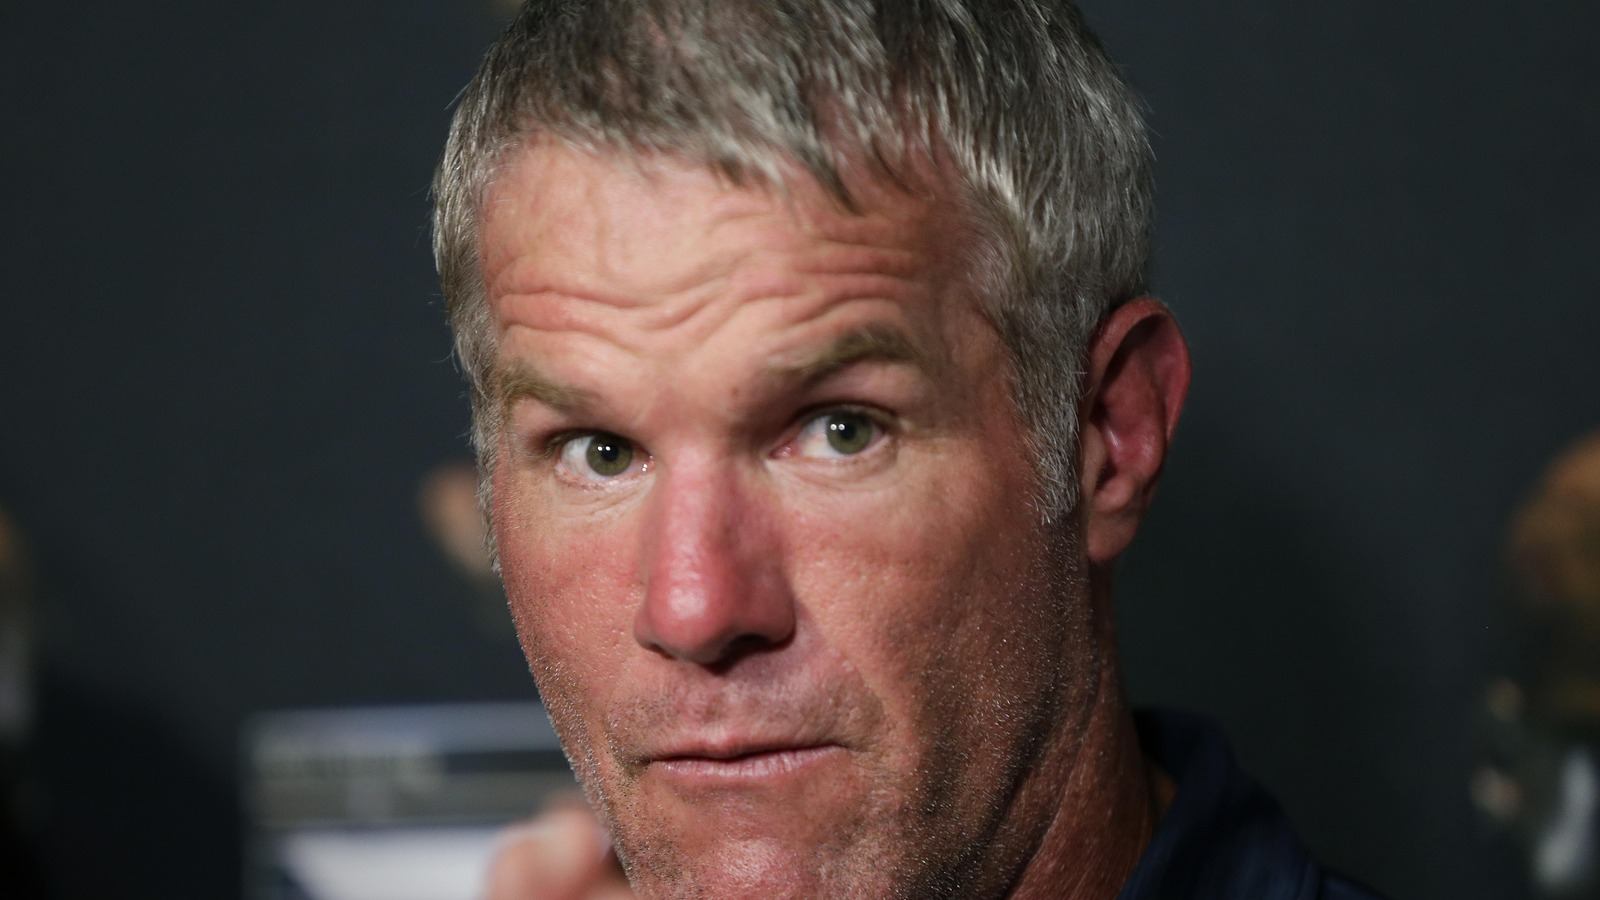 brett favre new concussion drug a game changer com